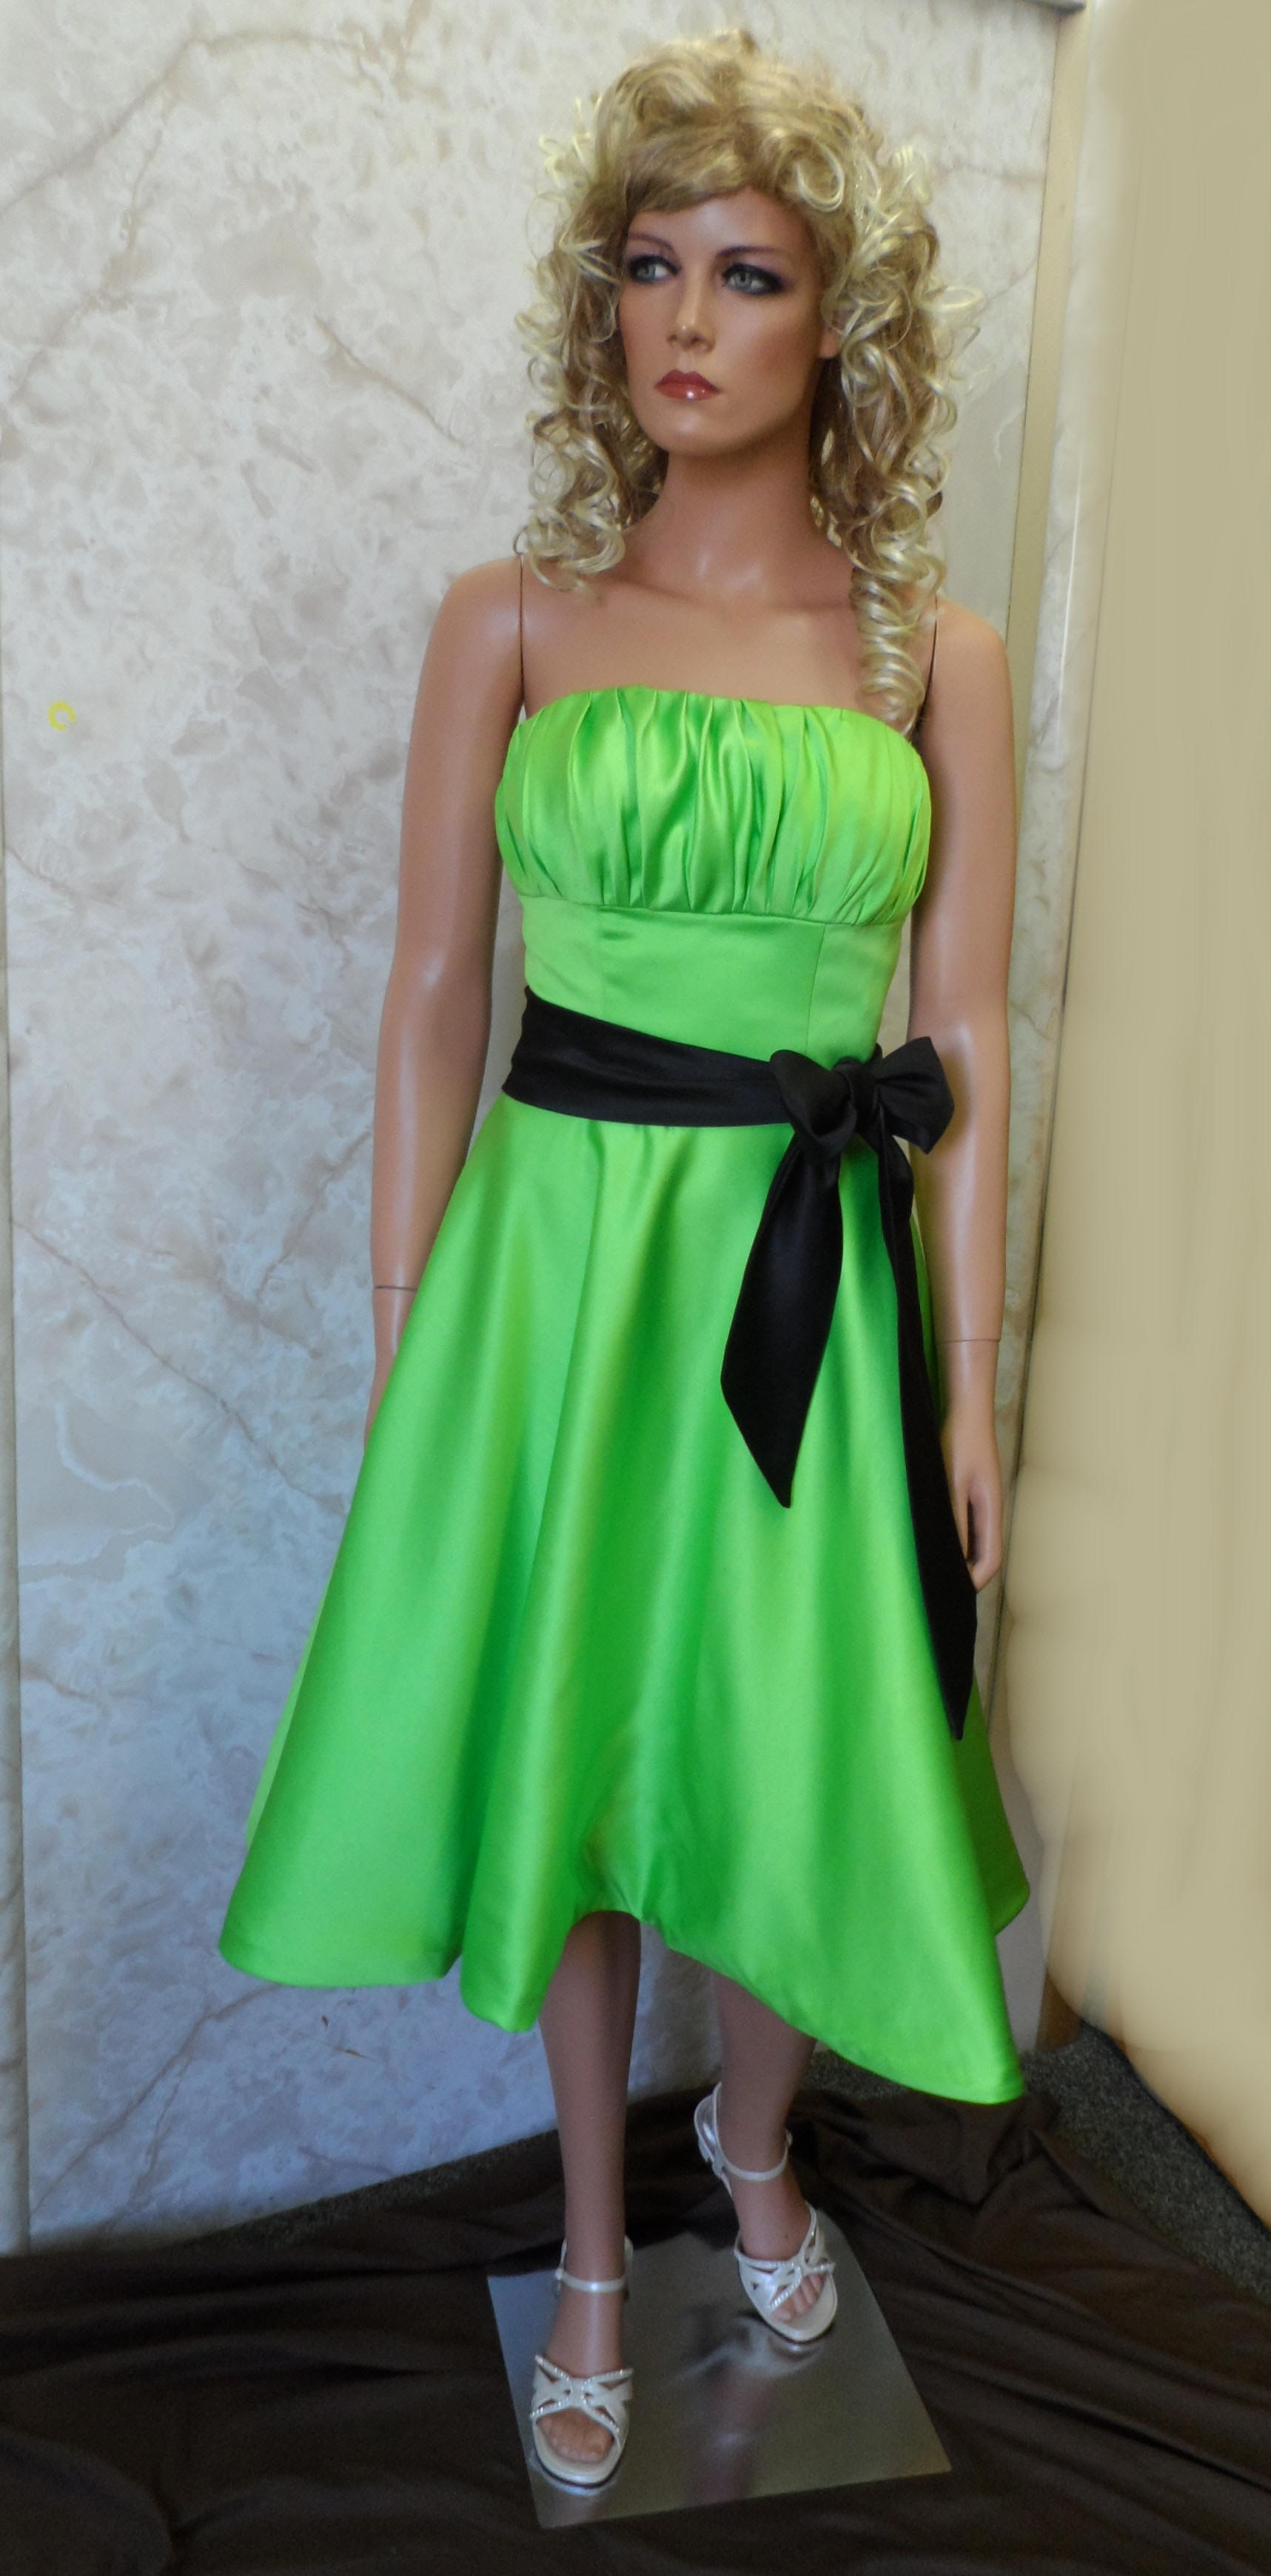 Lime green strapless dress with black sash